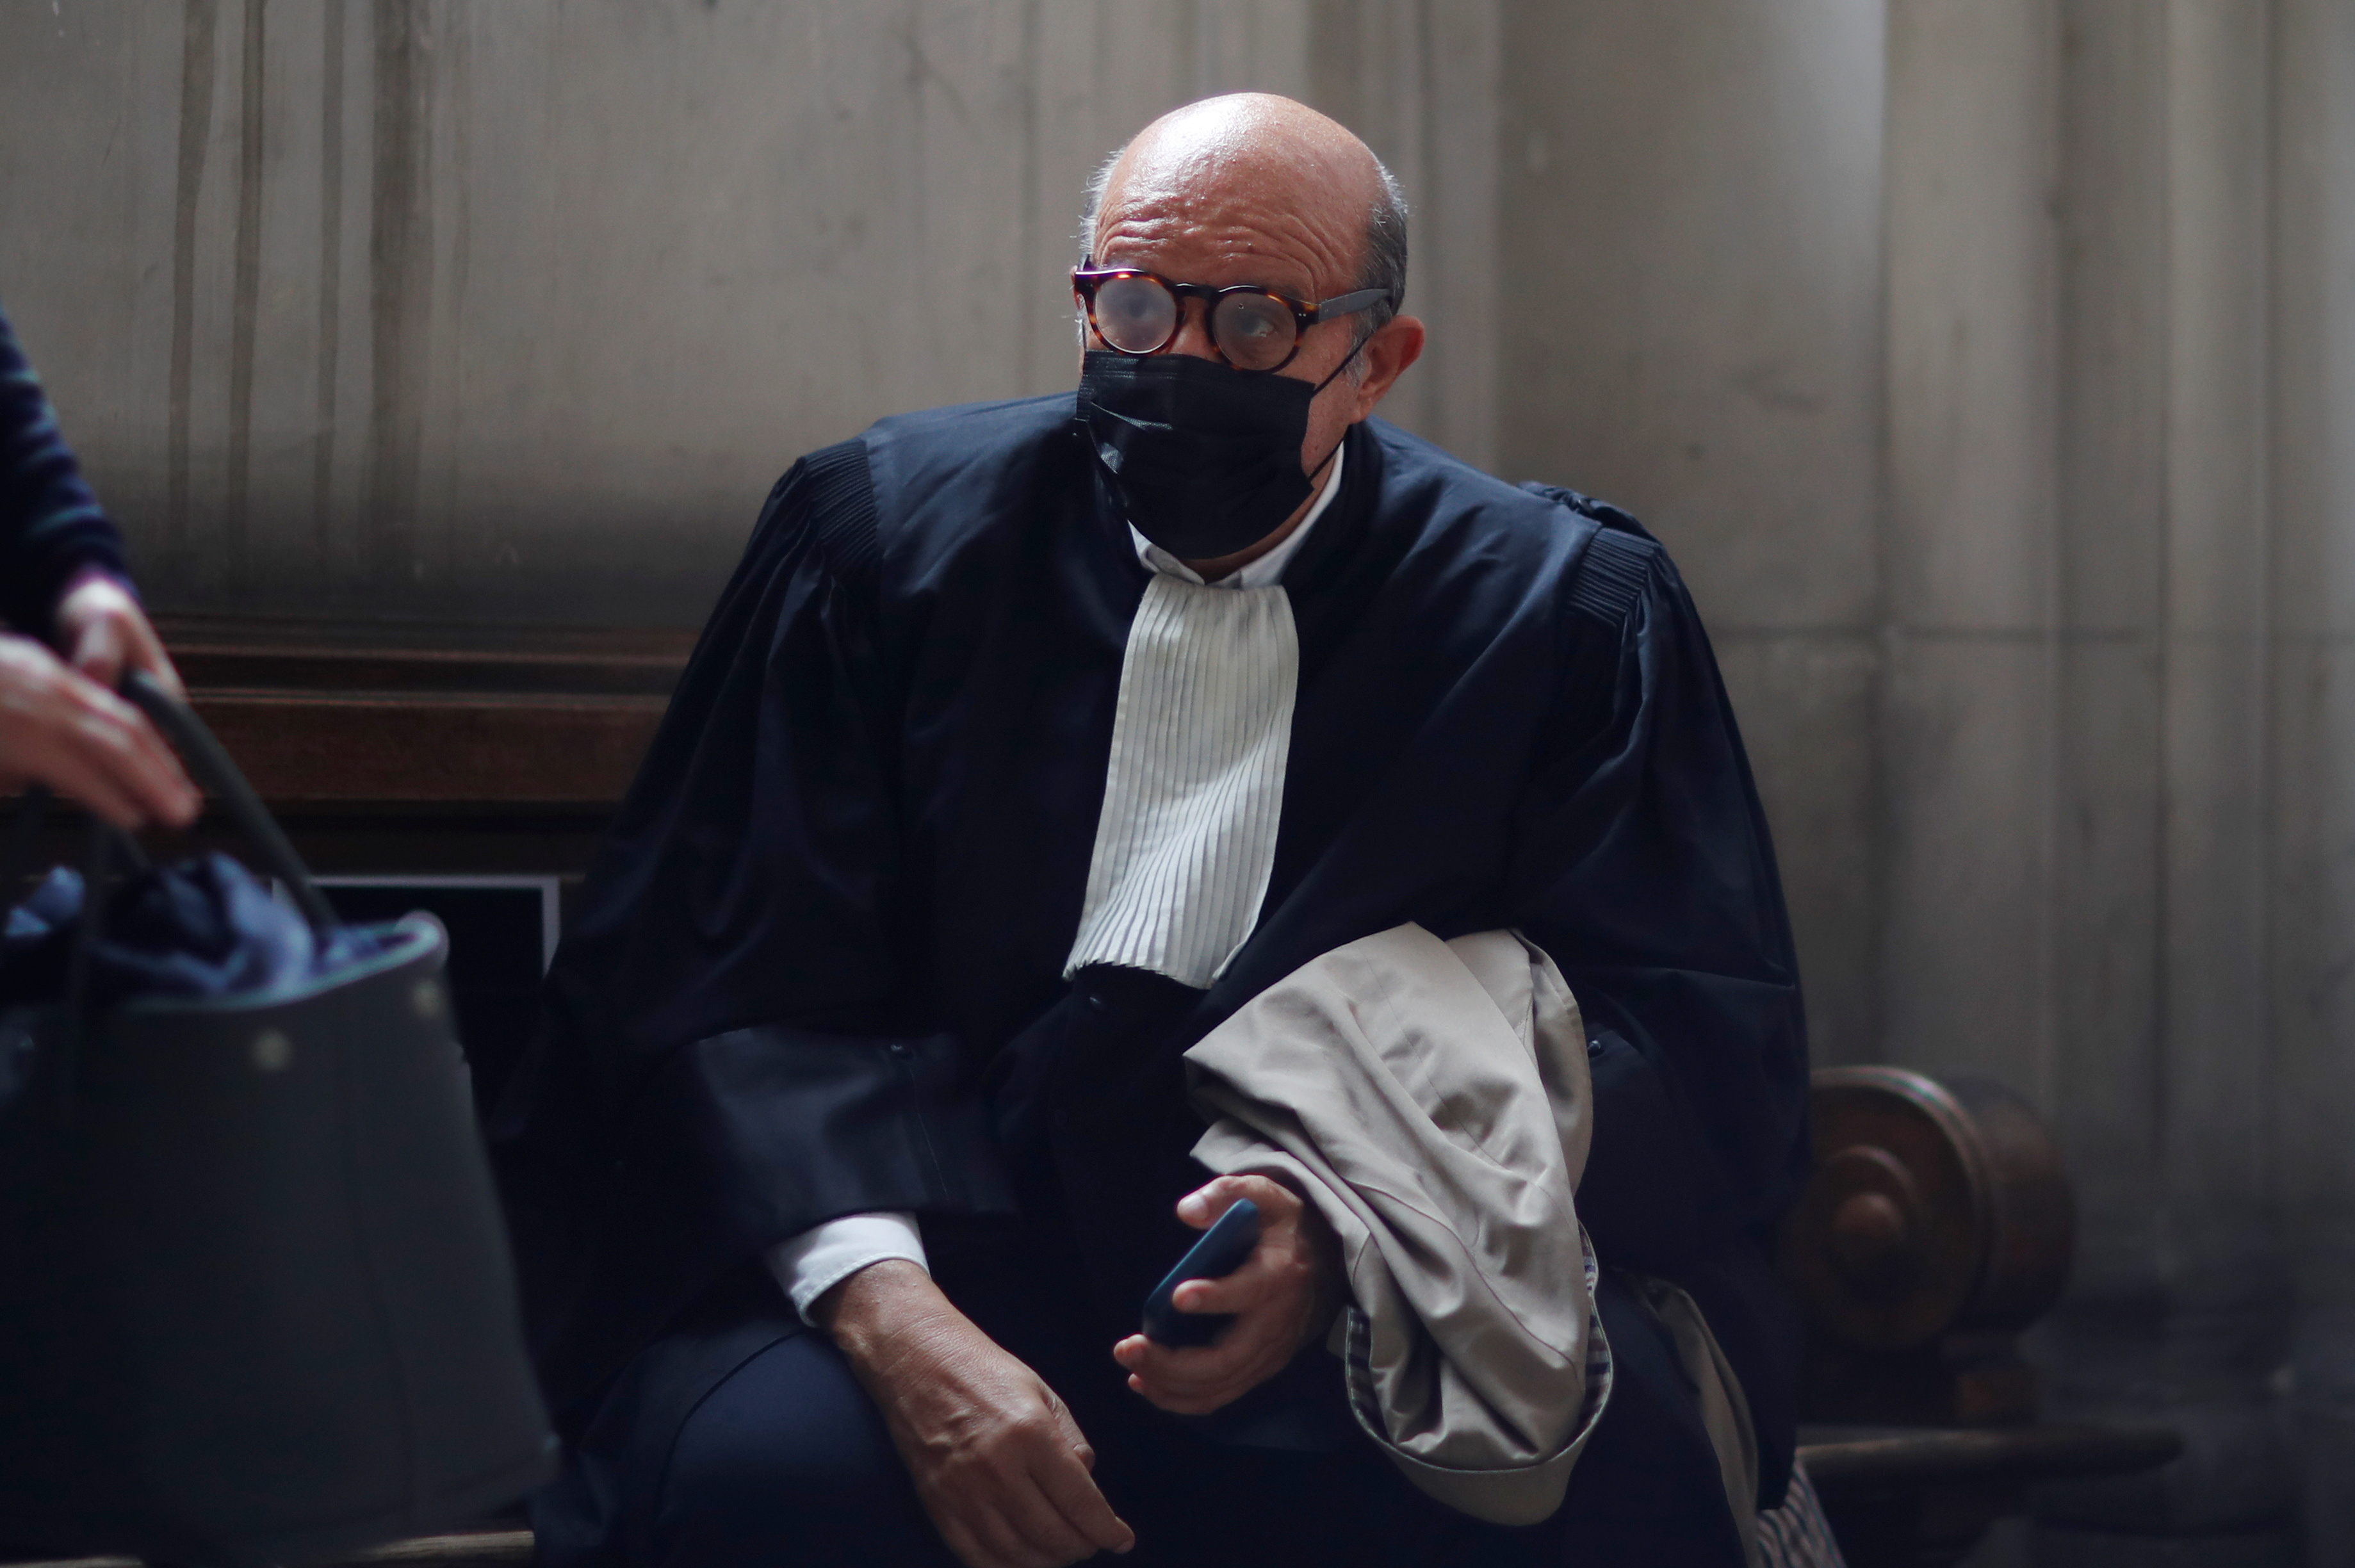 Herve Temime, lawyer of Swiss bank UBS, is seen at the Paris Appeals Court as French judges are set to rule today on Swiss bank UBS's delayed appeal against a 4.5 billion-euro fine for allegedly helping wealthy clients stash undeclared assets offshore, in Paris, France, September 27, 2021. REUTERS/Gonzalo Fuentes